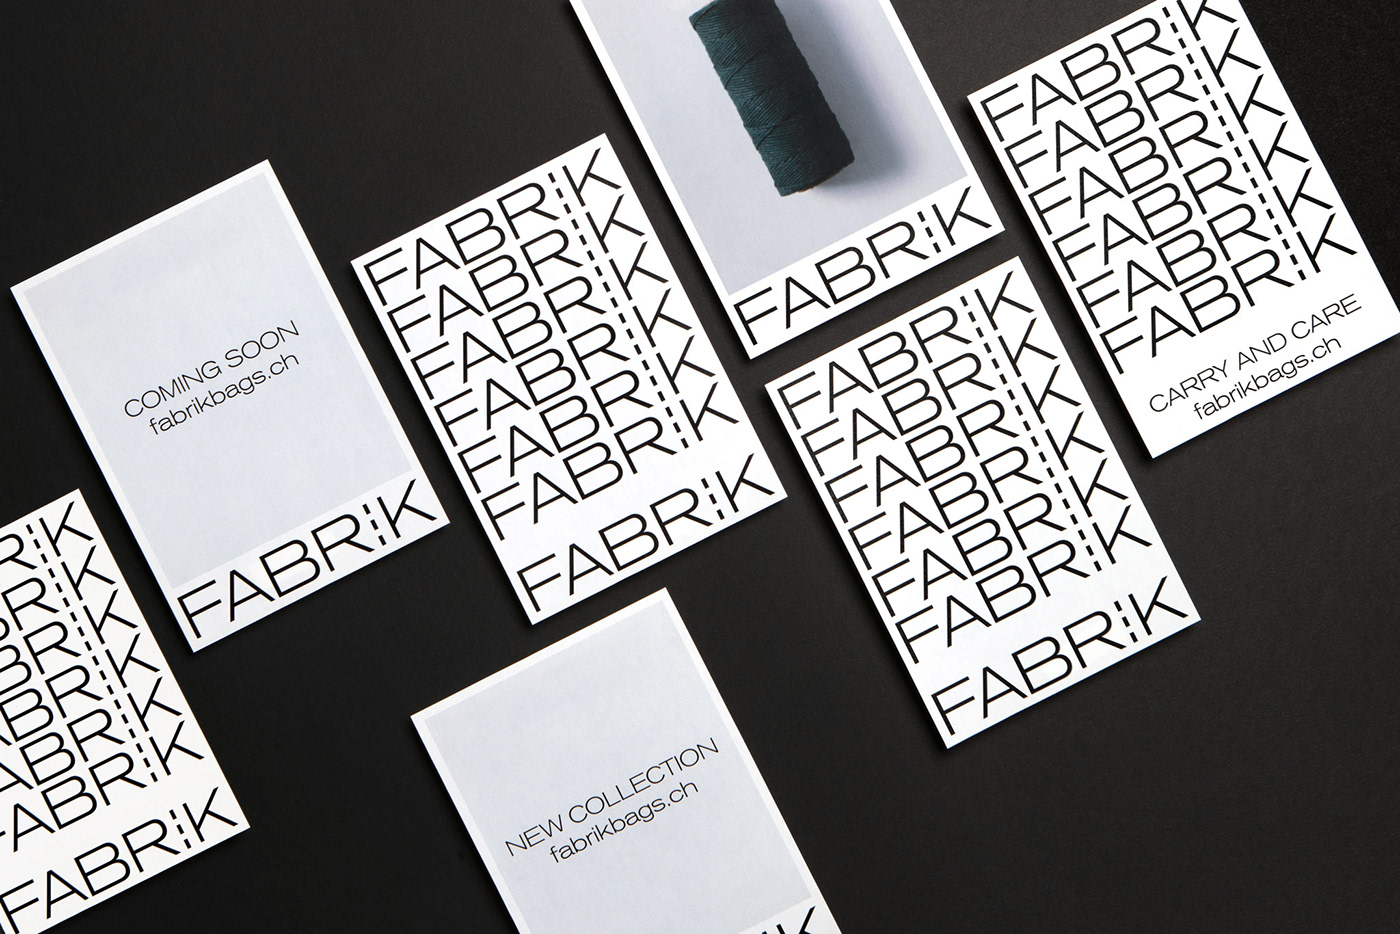 pattern visual identity Stationery colors Business Cards fabric art direction  Logotype flyer branding